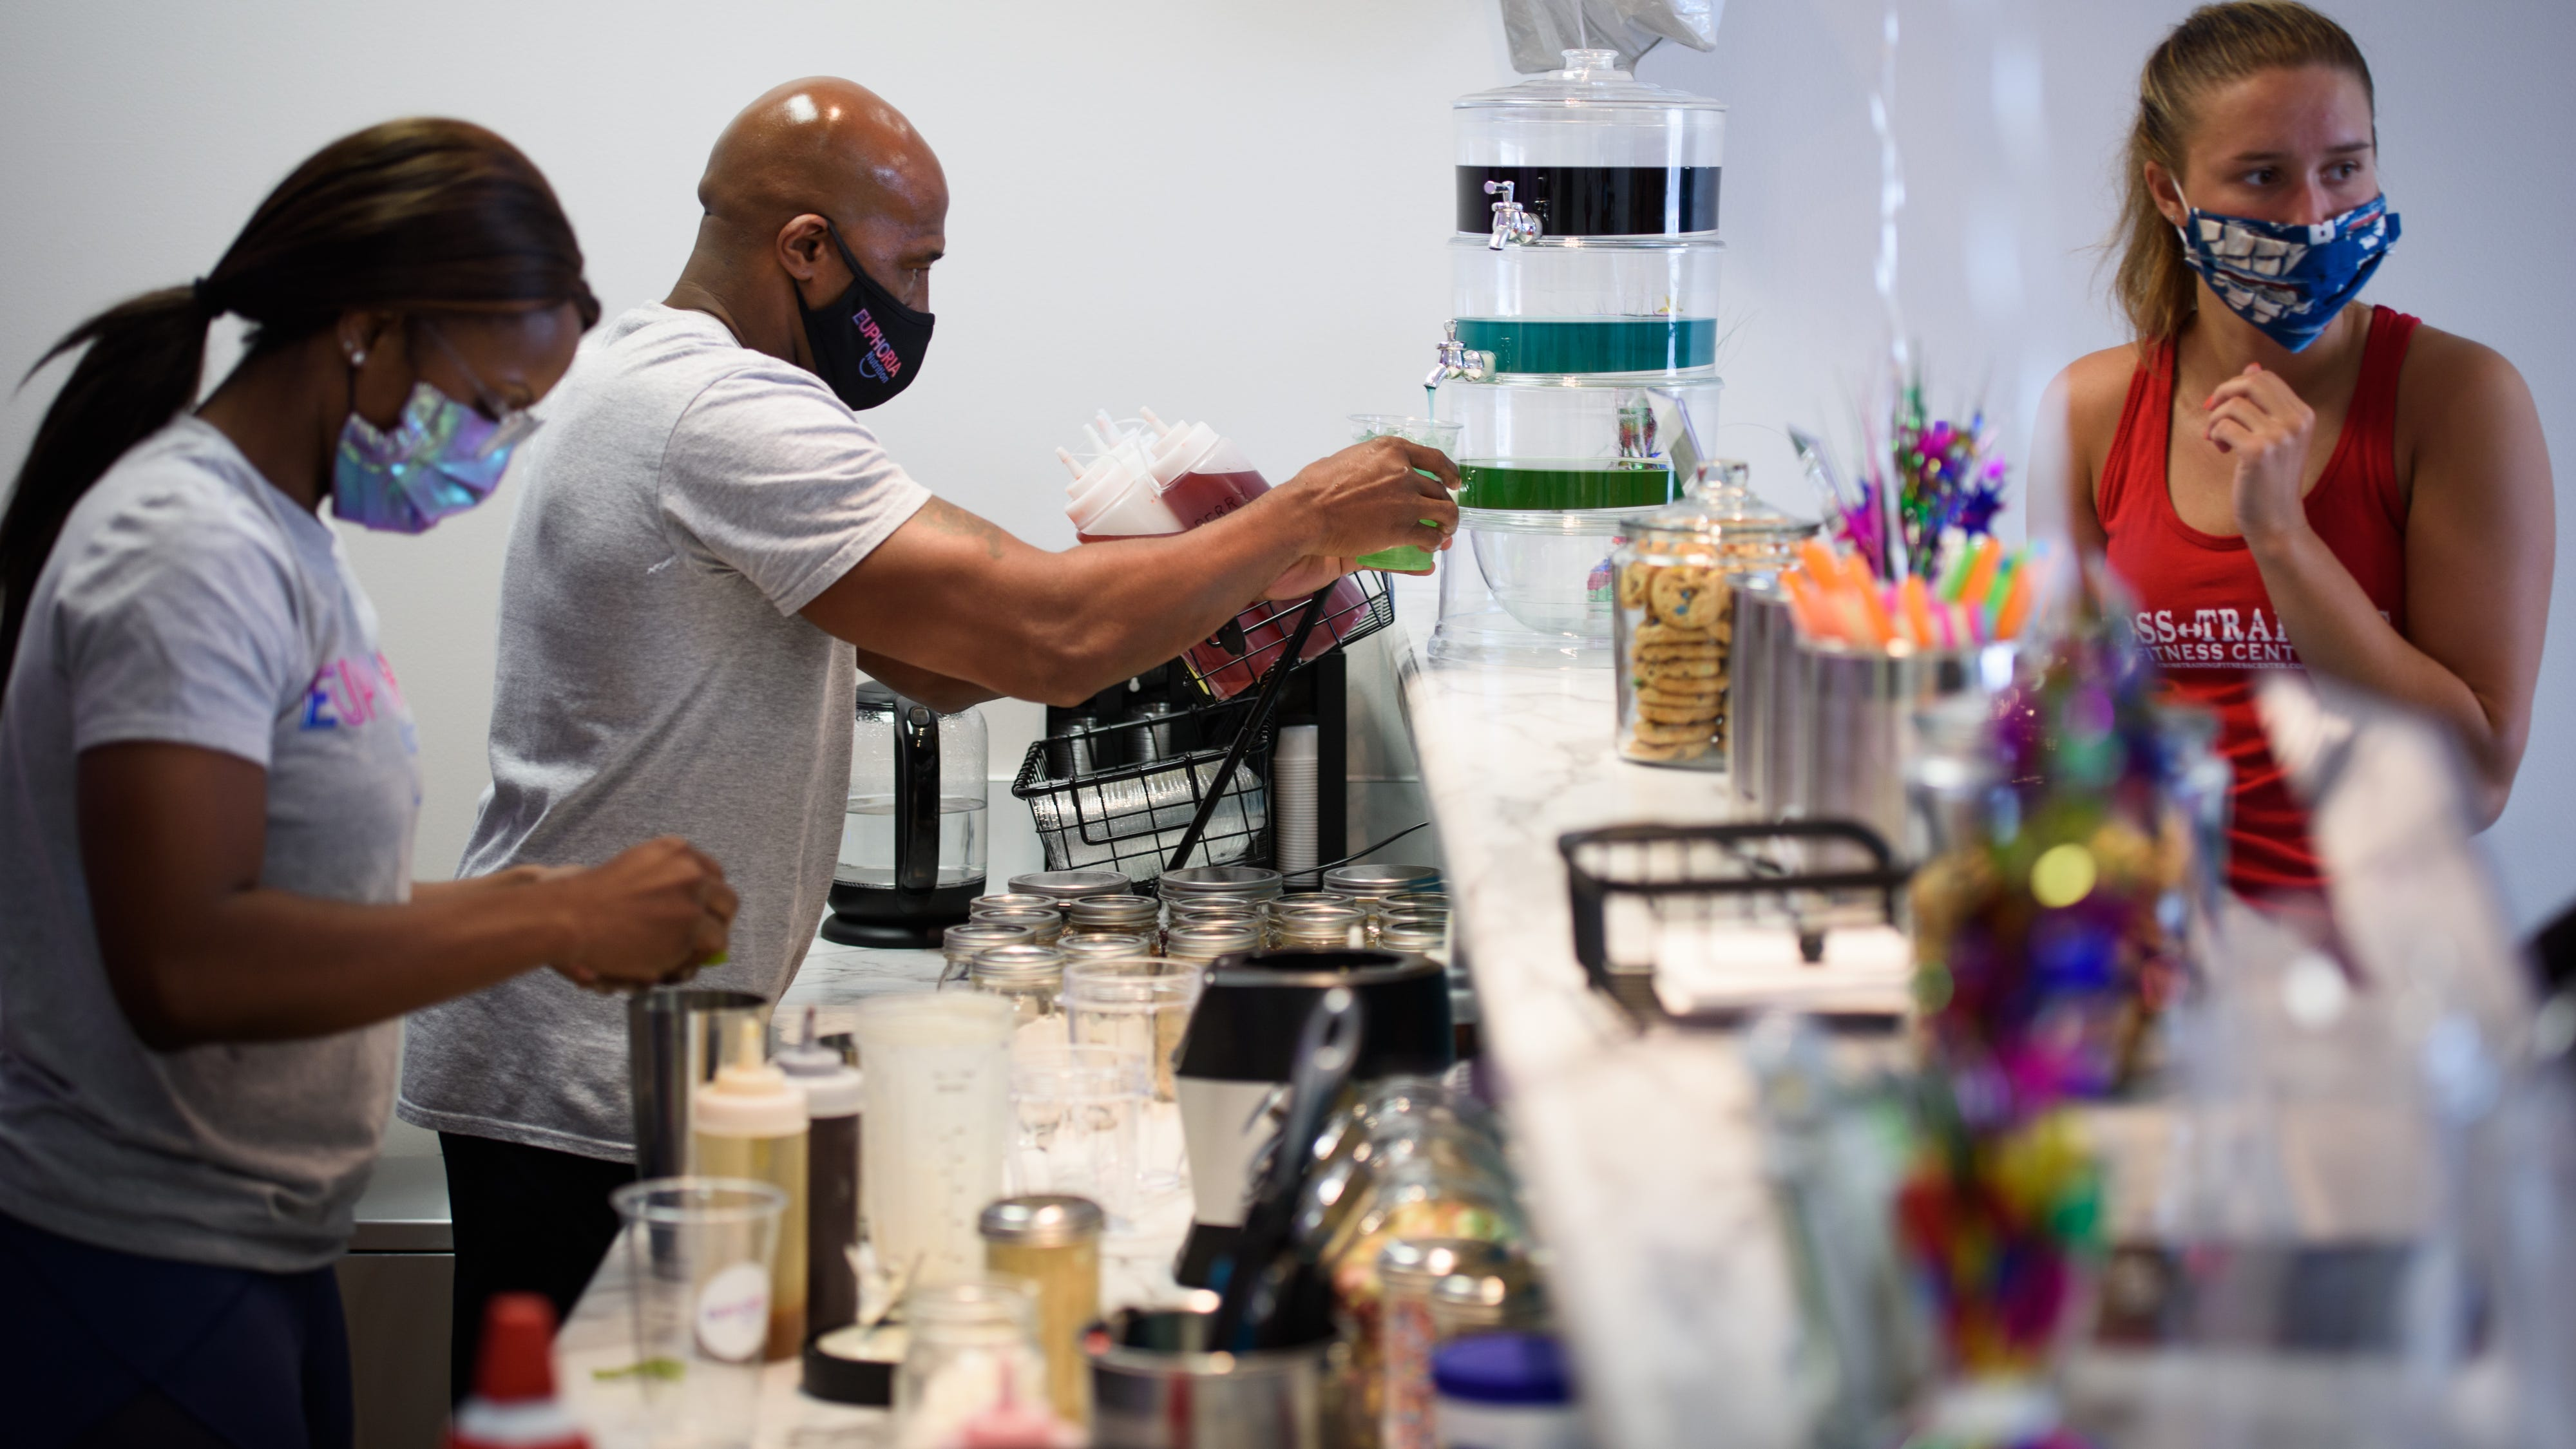 Kwamdre, left, and Everitt Willamson work on making drinks for customers at Euphoria Nutrition on Friday, Aug. 7, 2020.